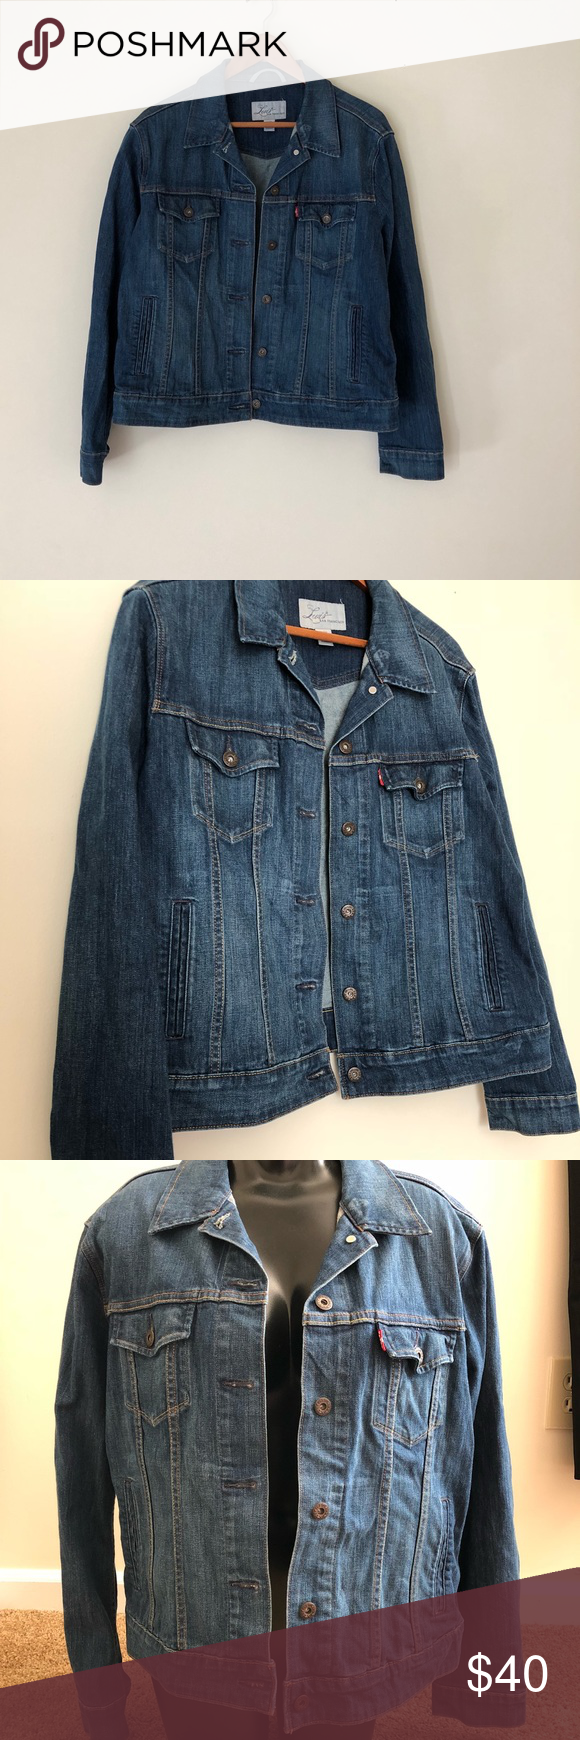 LEVIS DENIM JACKET This jacket is perfect for any season. So cute over a dress or denim on denim look, so many ways to wear this jacket and it will never go out of style. It's in excellent condition. Size XL. No trades. Smoke free home. Thanks for looking! Levi's Jackets & Coats Jean Jackets